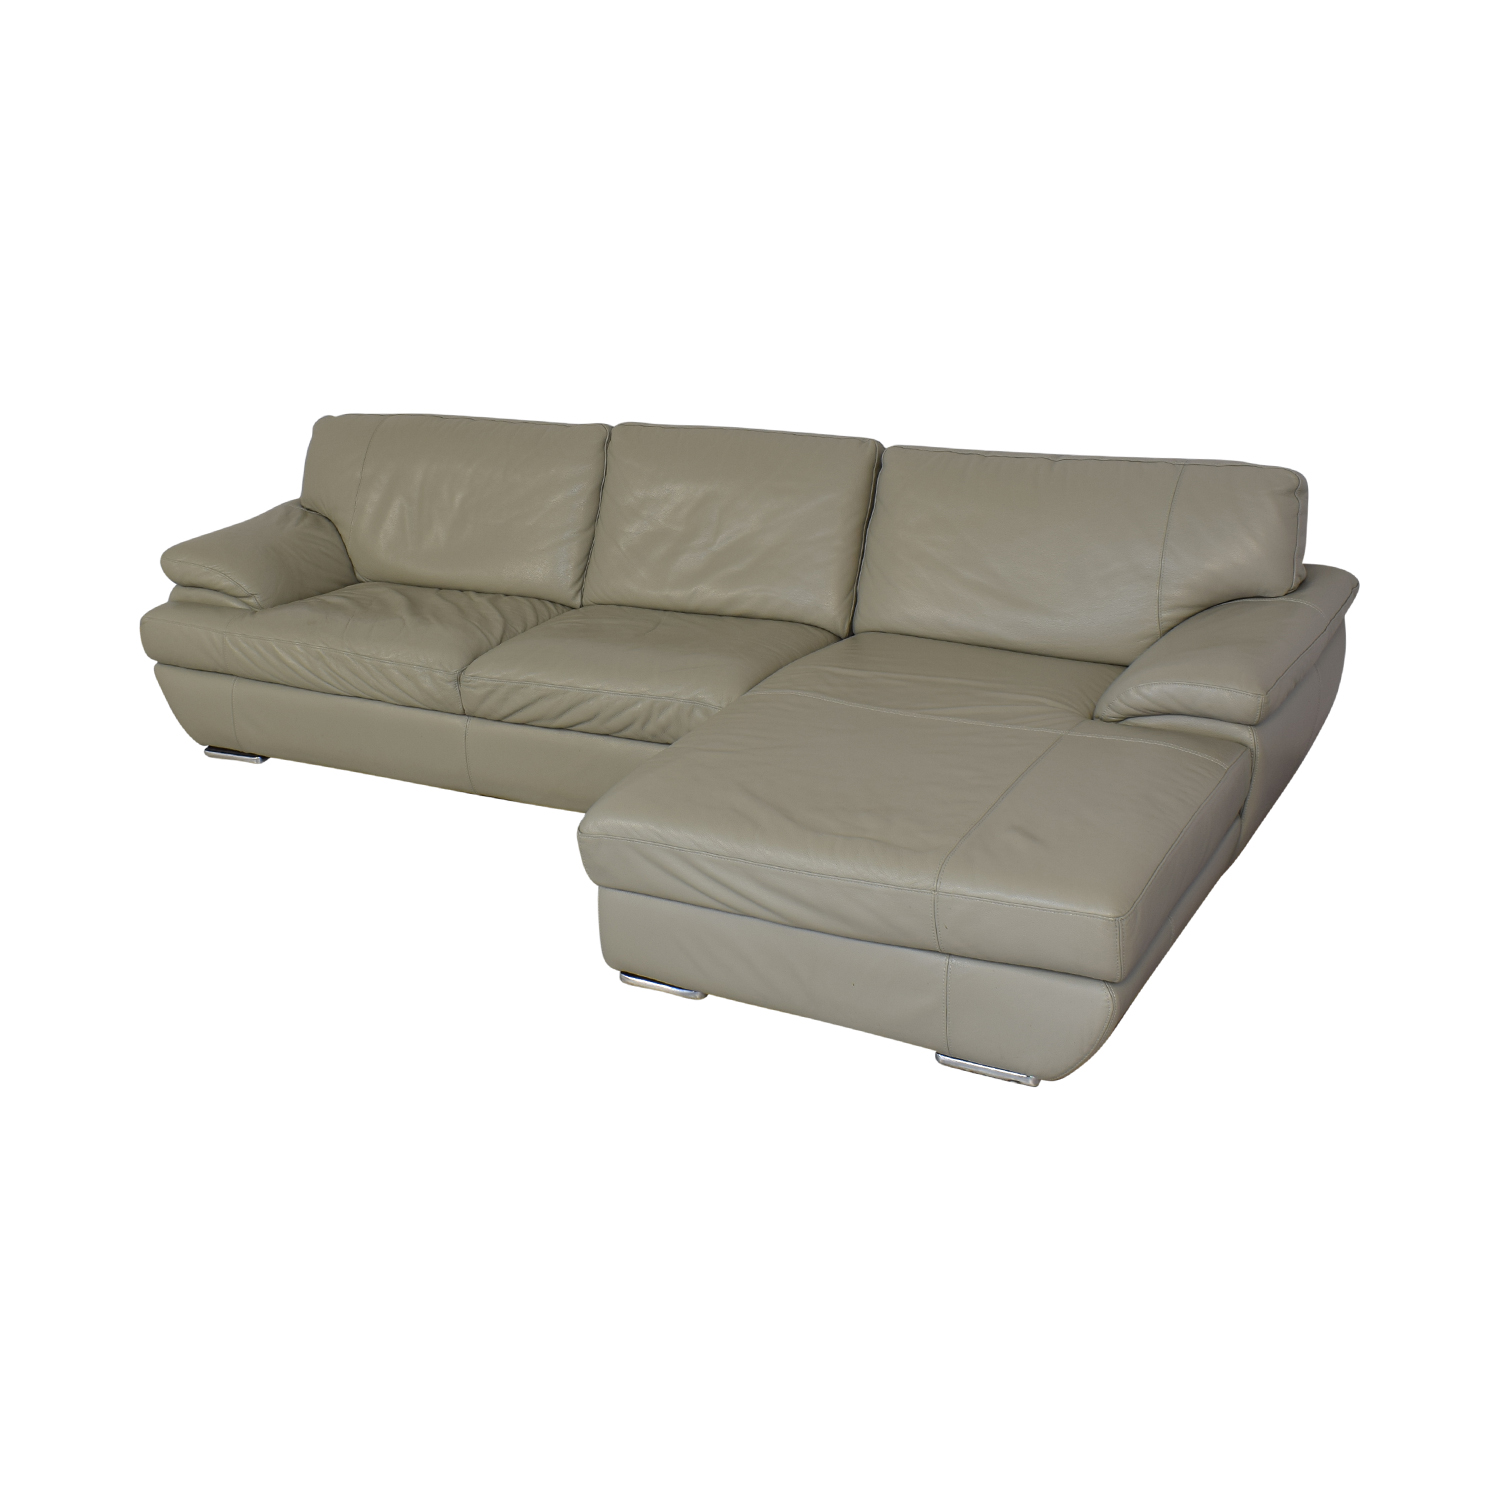 buy Chateau d'Ax Chateau d'Ax Sectional Sofa with Chaise online